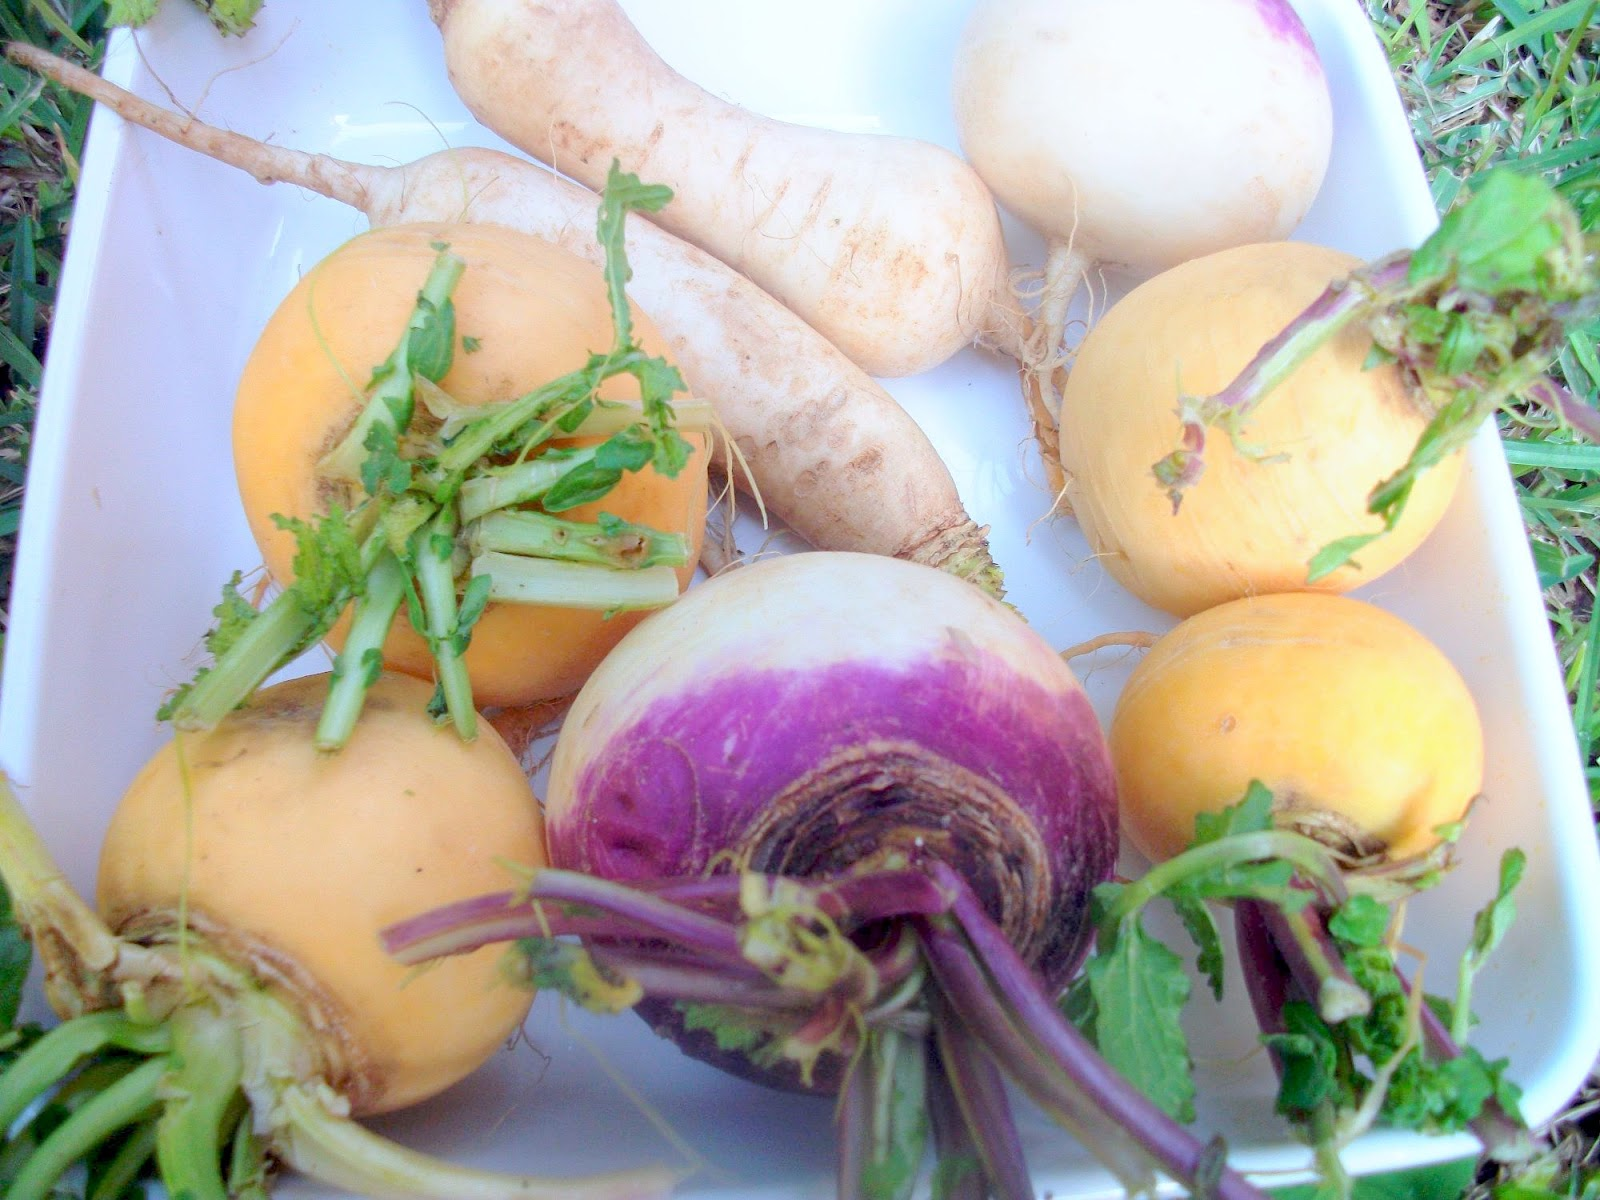 Sorts of turnips widely available in Morocco (photo taken there). The ...